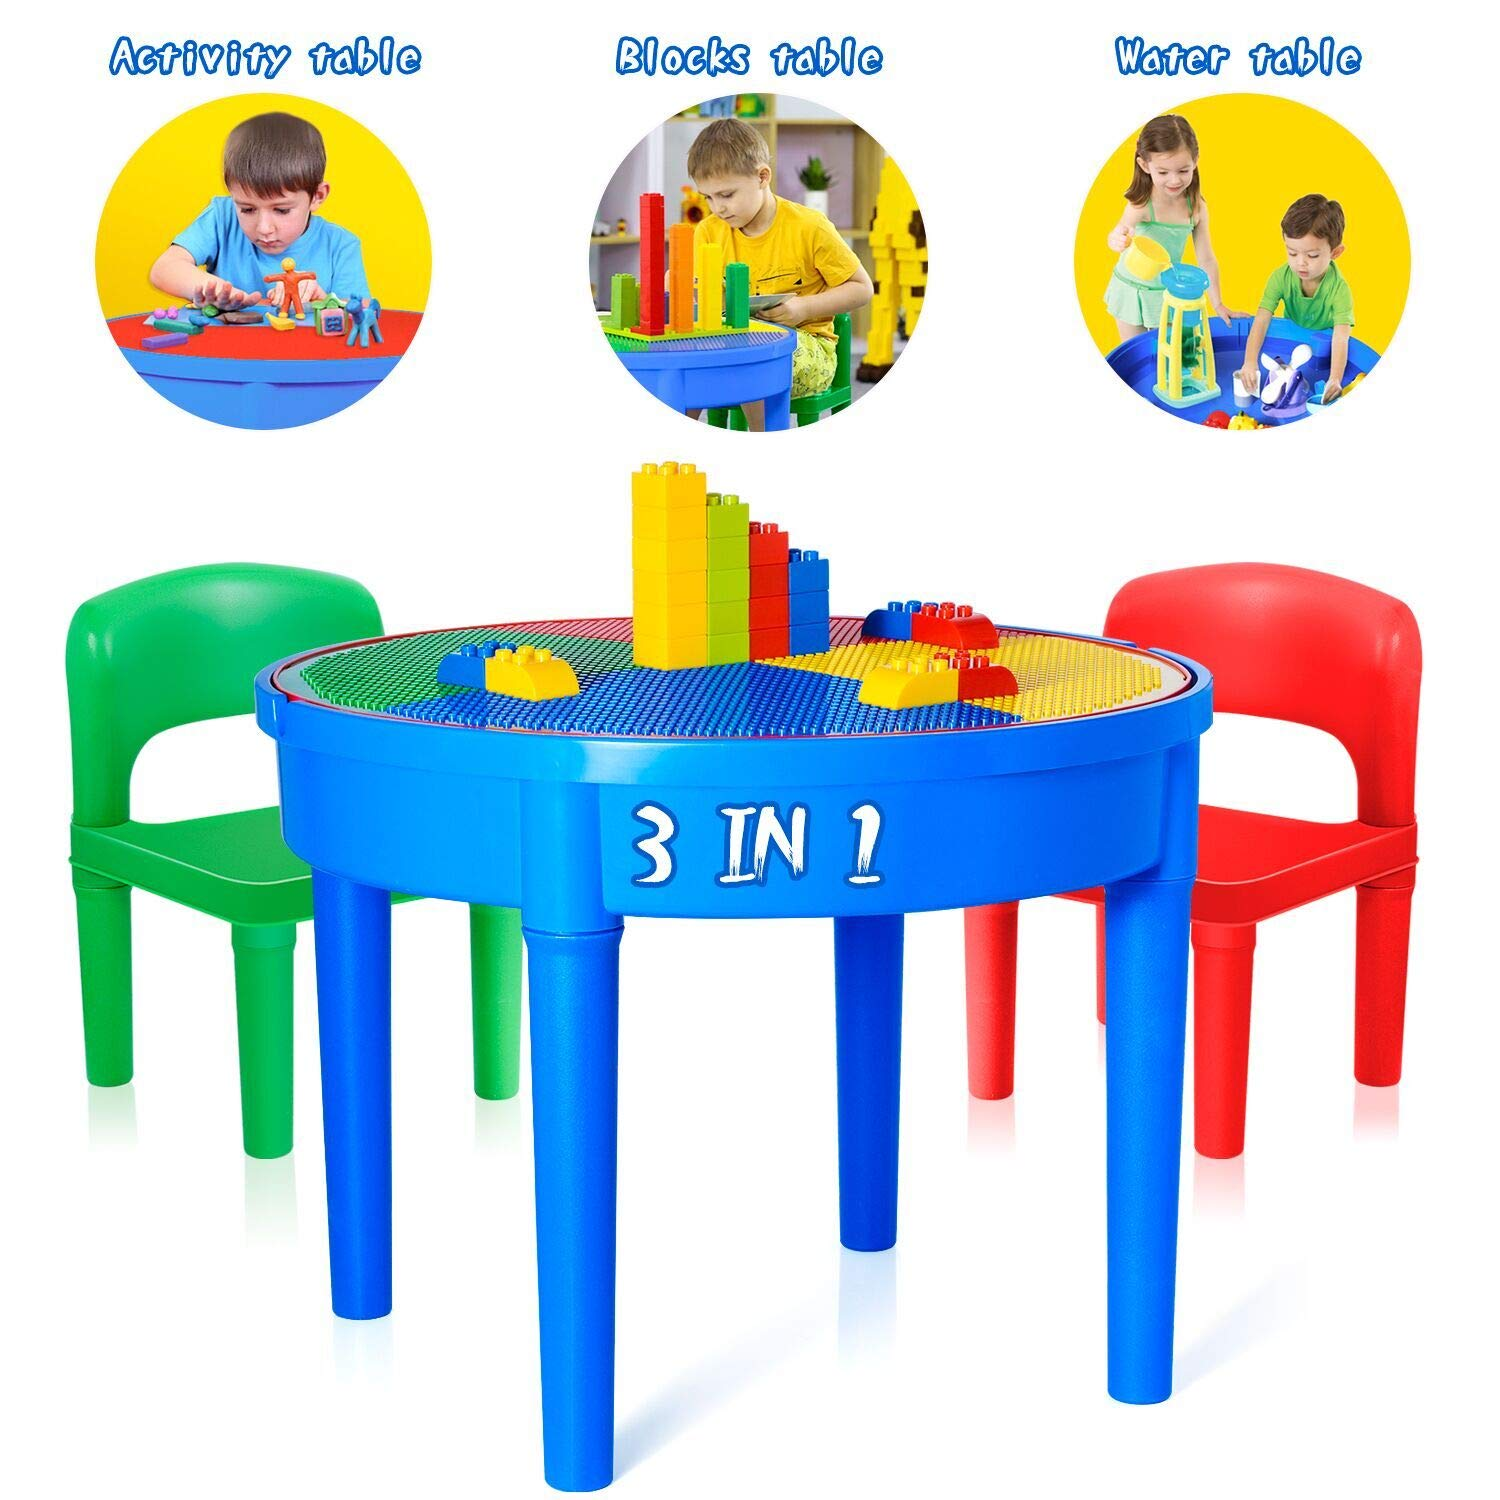 Kids Activity Table, 3 in1 Water Table, Play Table, Building Blocks Table and Storage for Toddler Kids Boys Grils